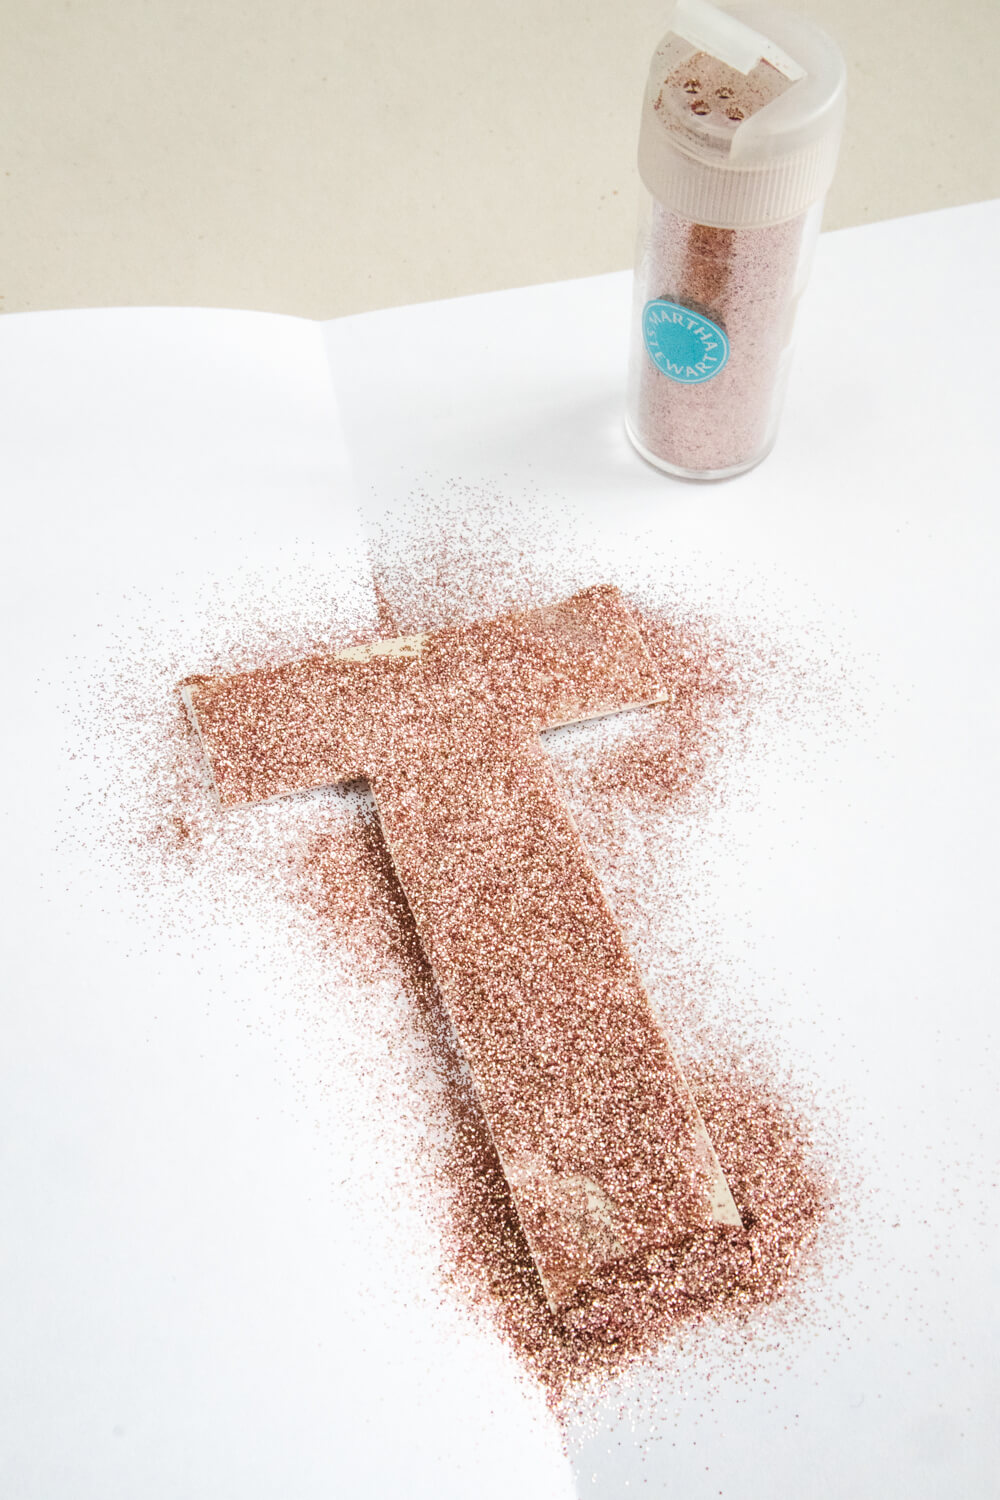 Fully cover your craft it in a heaping of glitter.